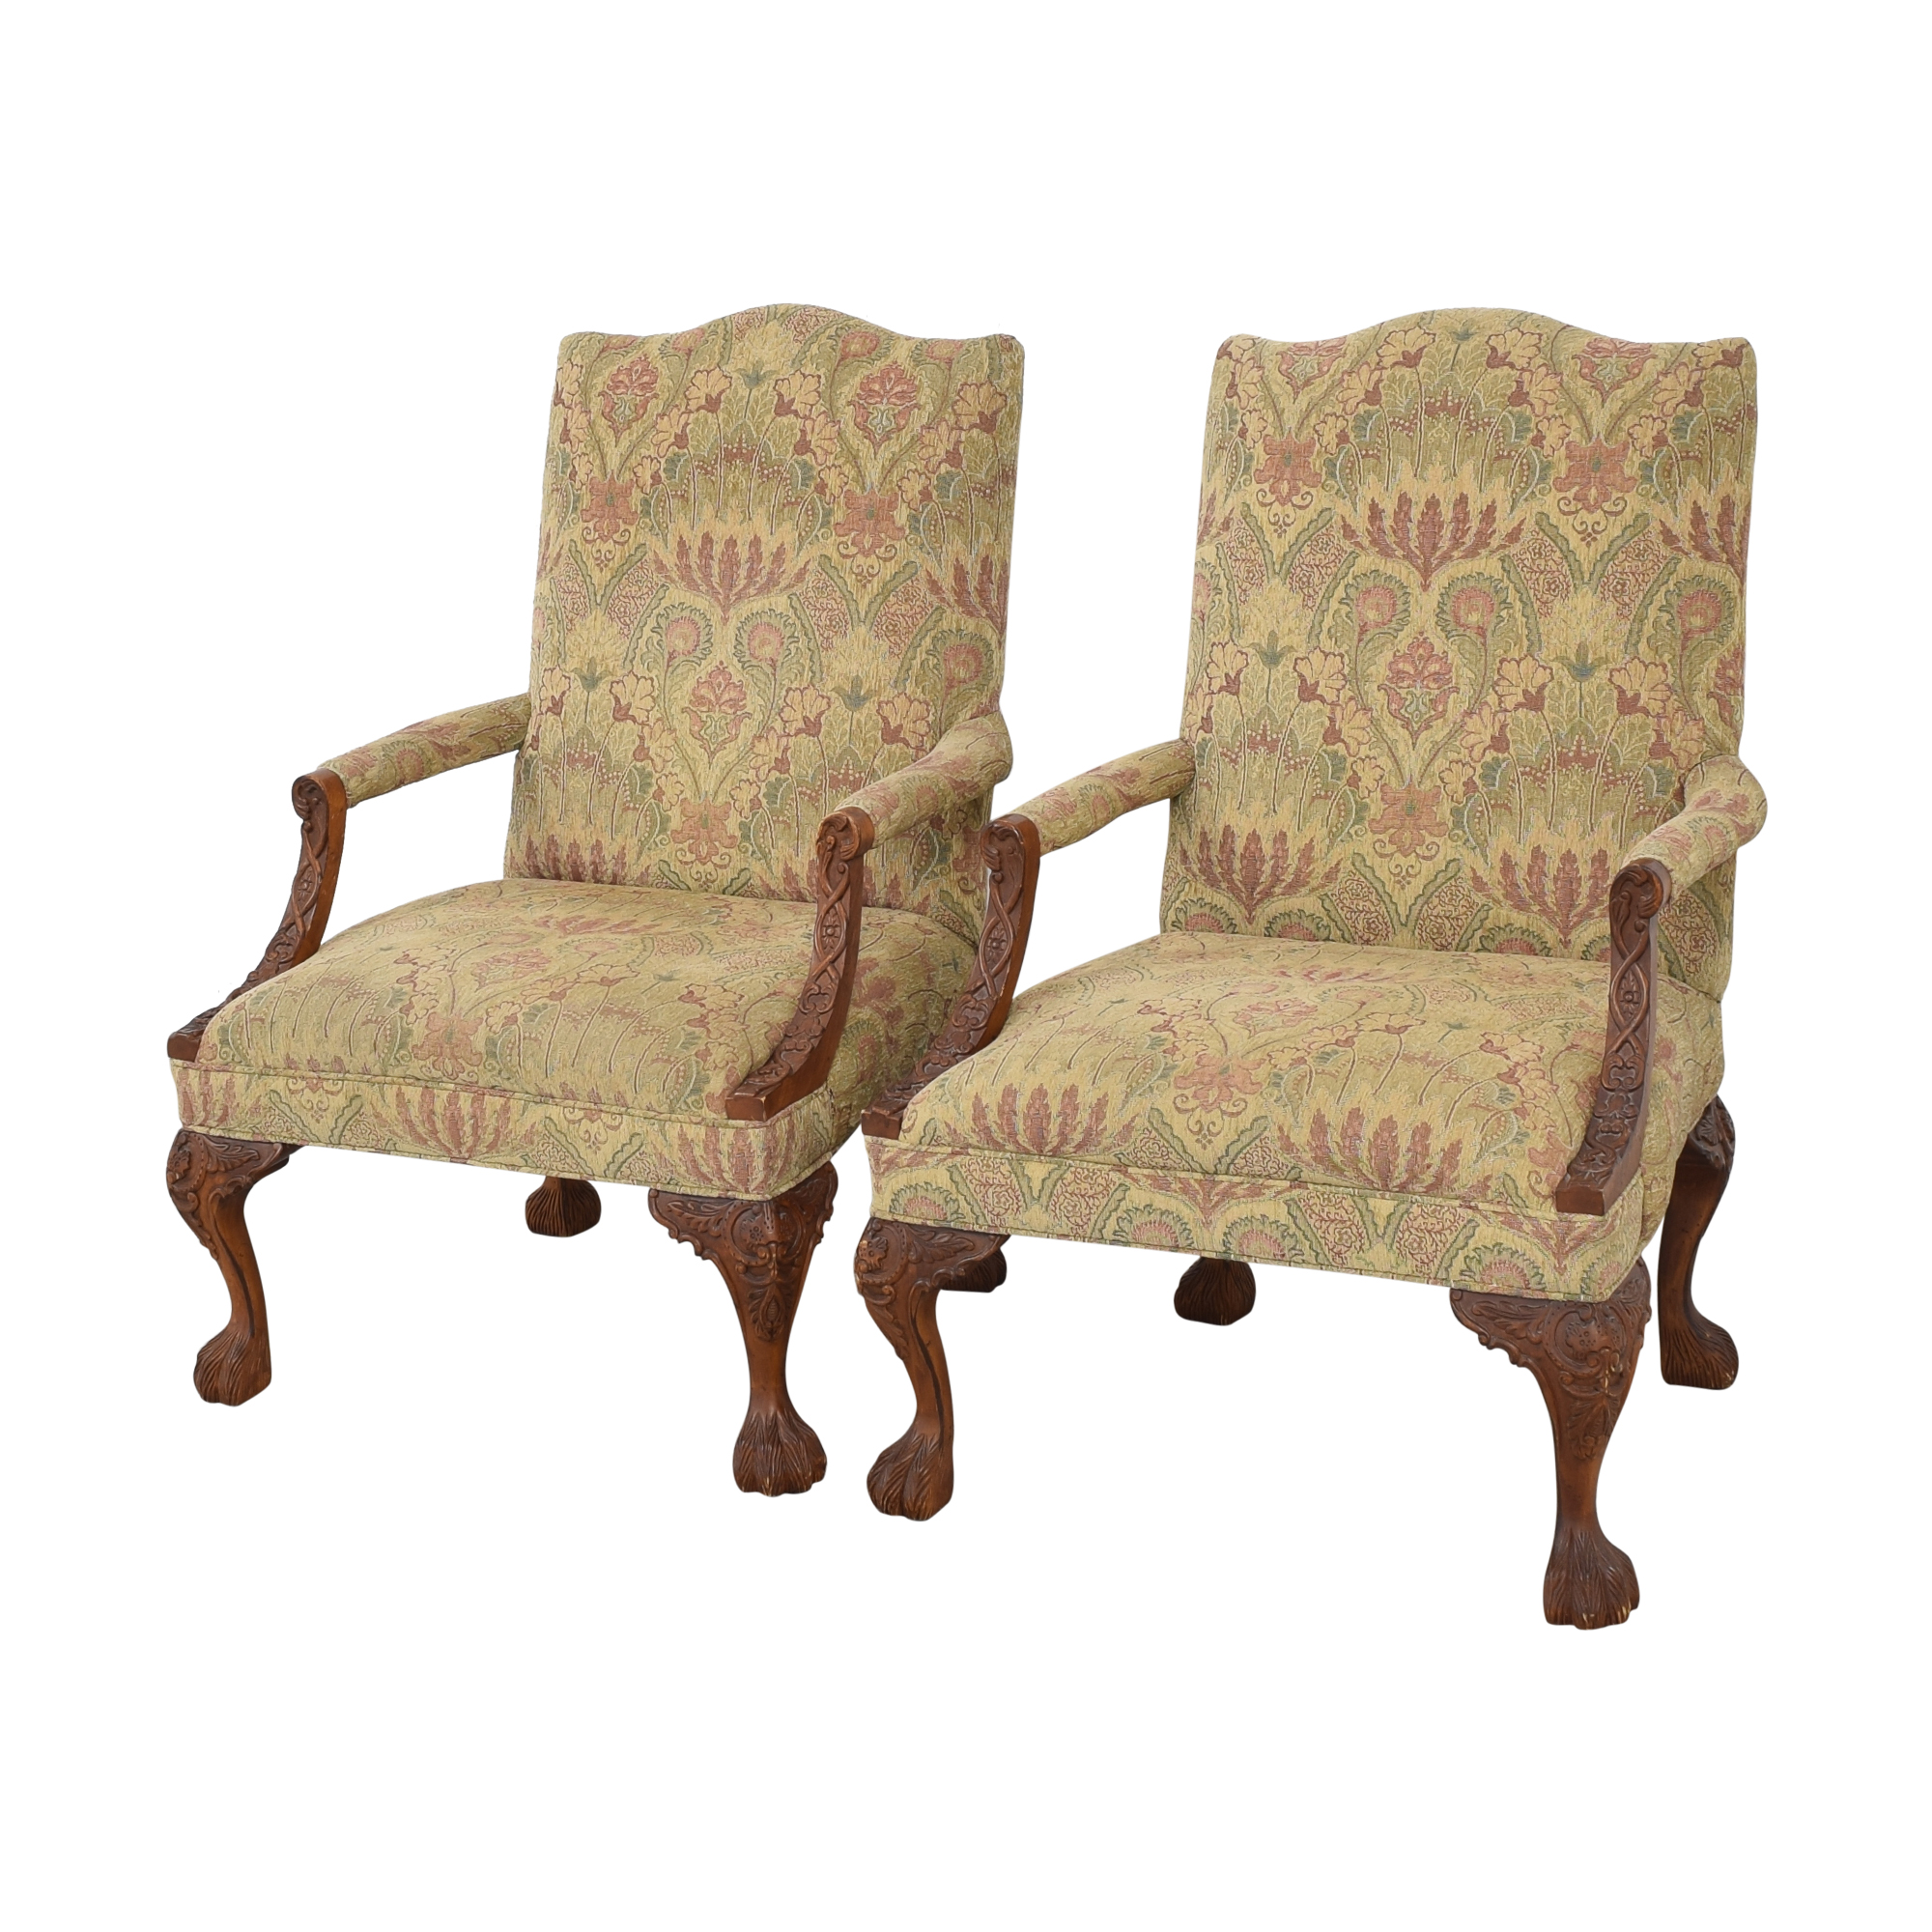 buy Sam Moore Tibetan Tapestry Old World Finish Carved Wood Chairs Sam Moore Tables